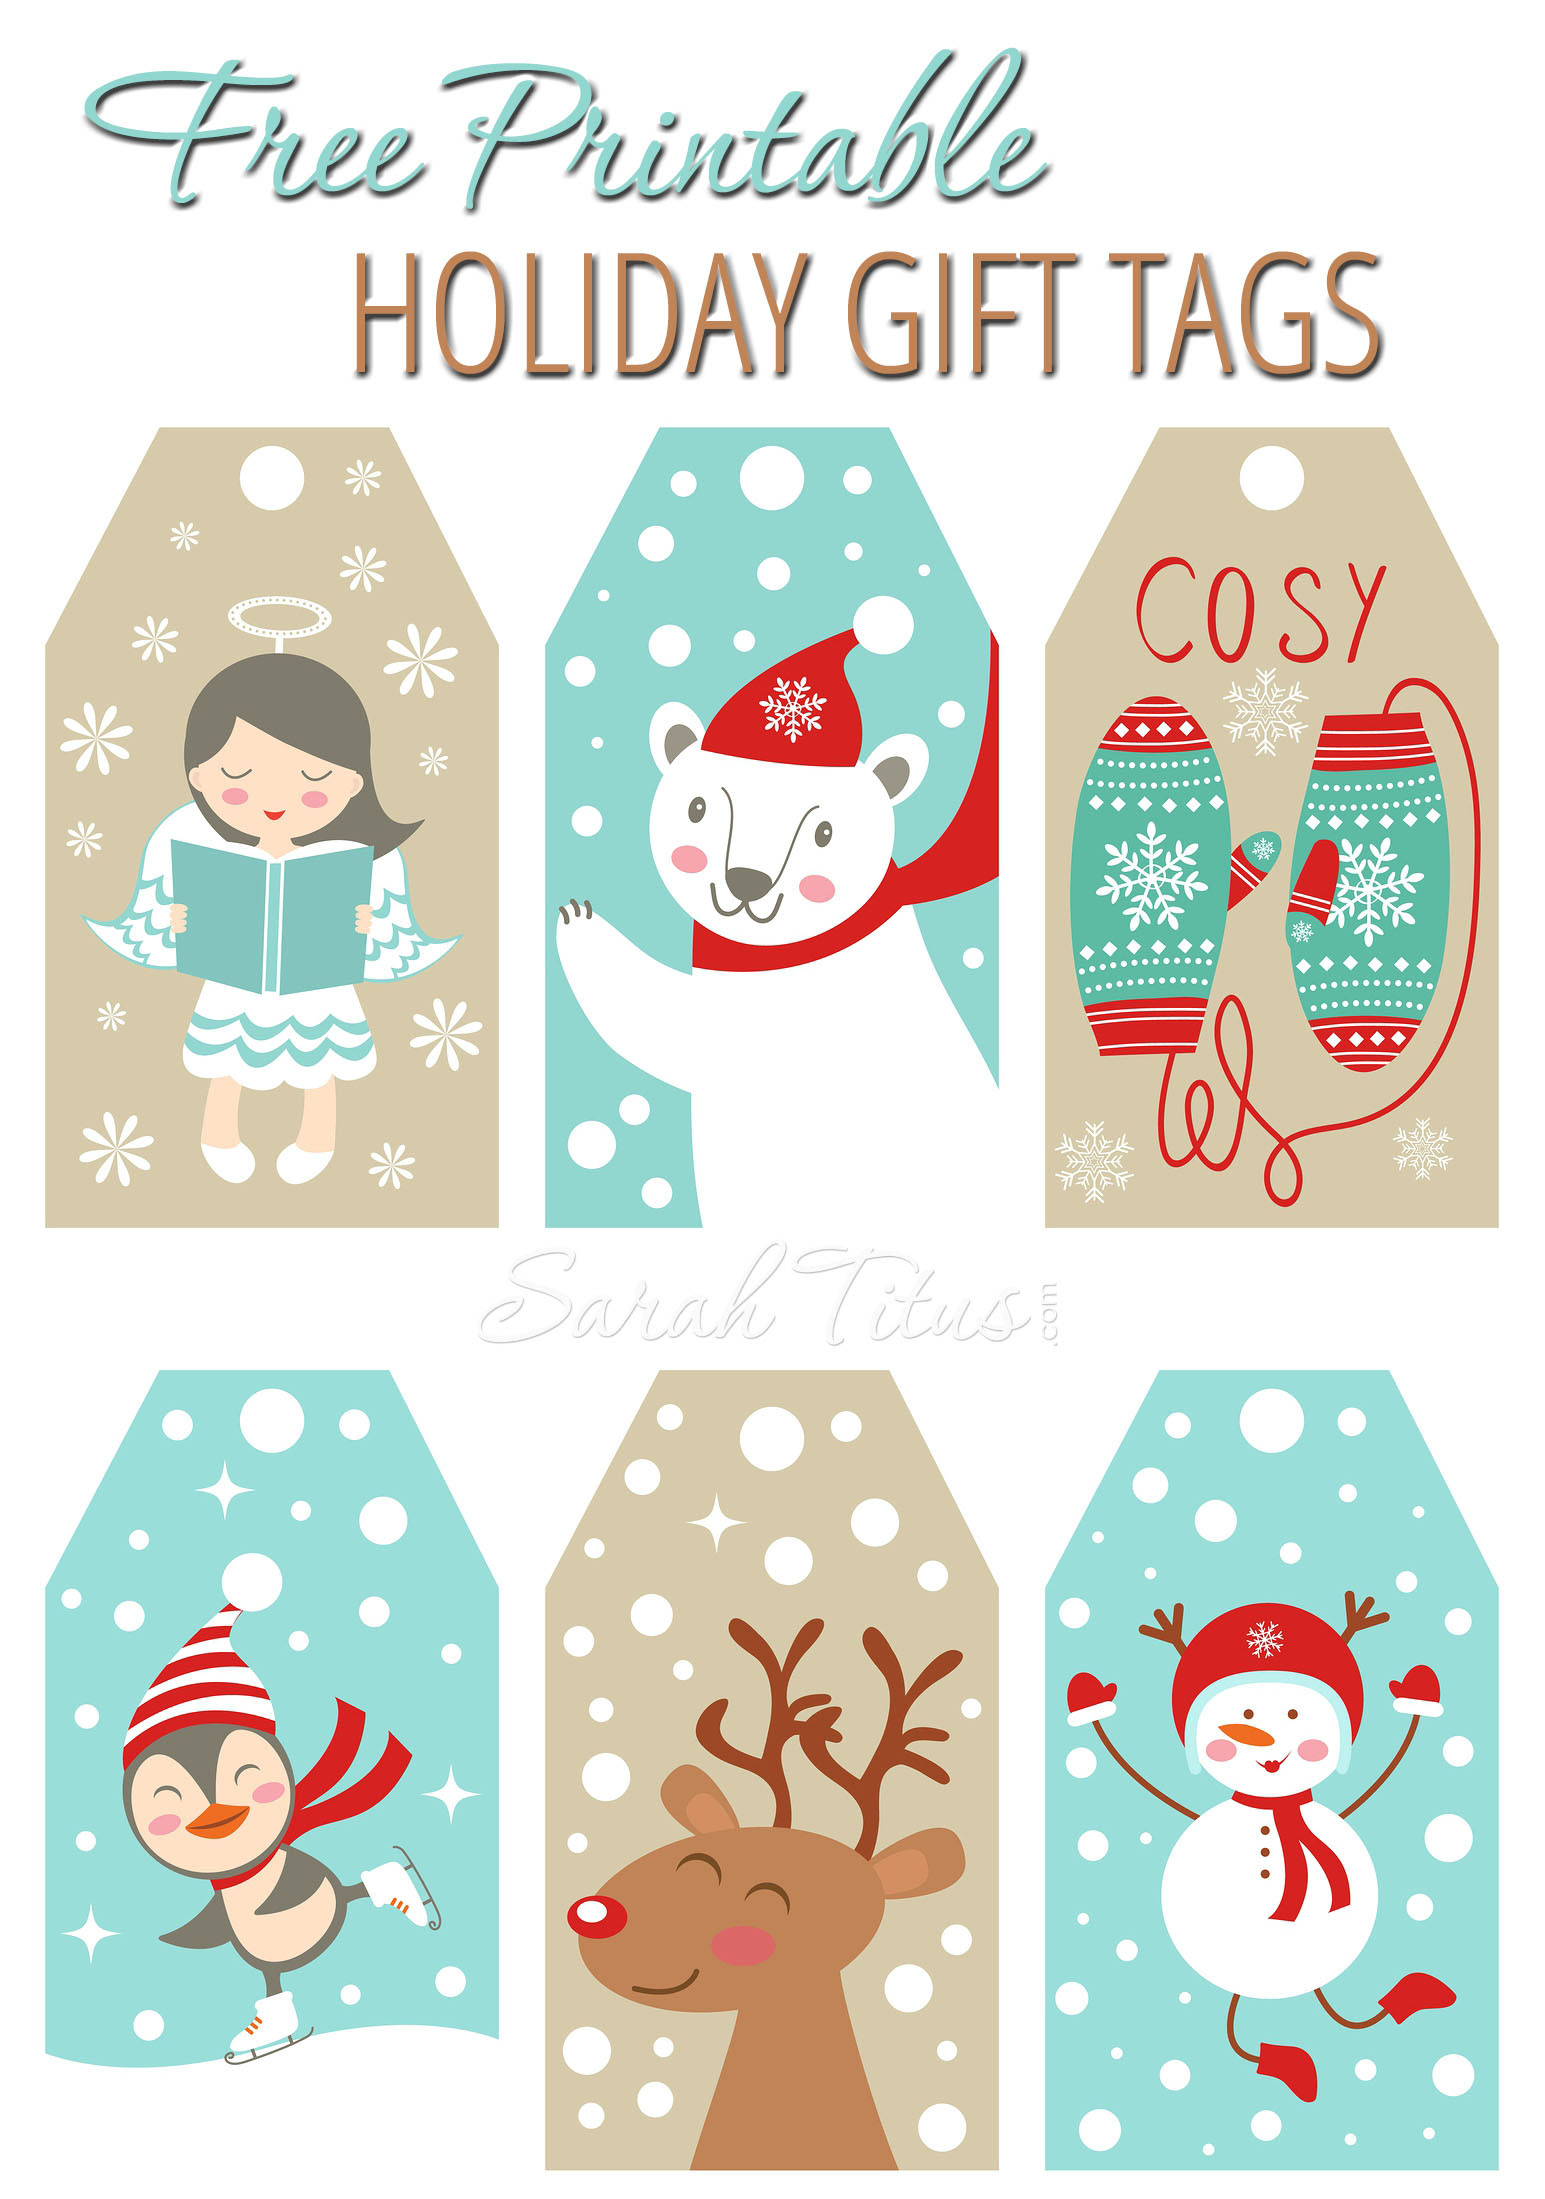 Here are some free printable holiday gift tags